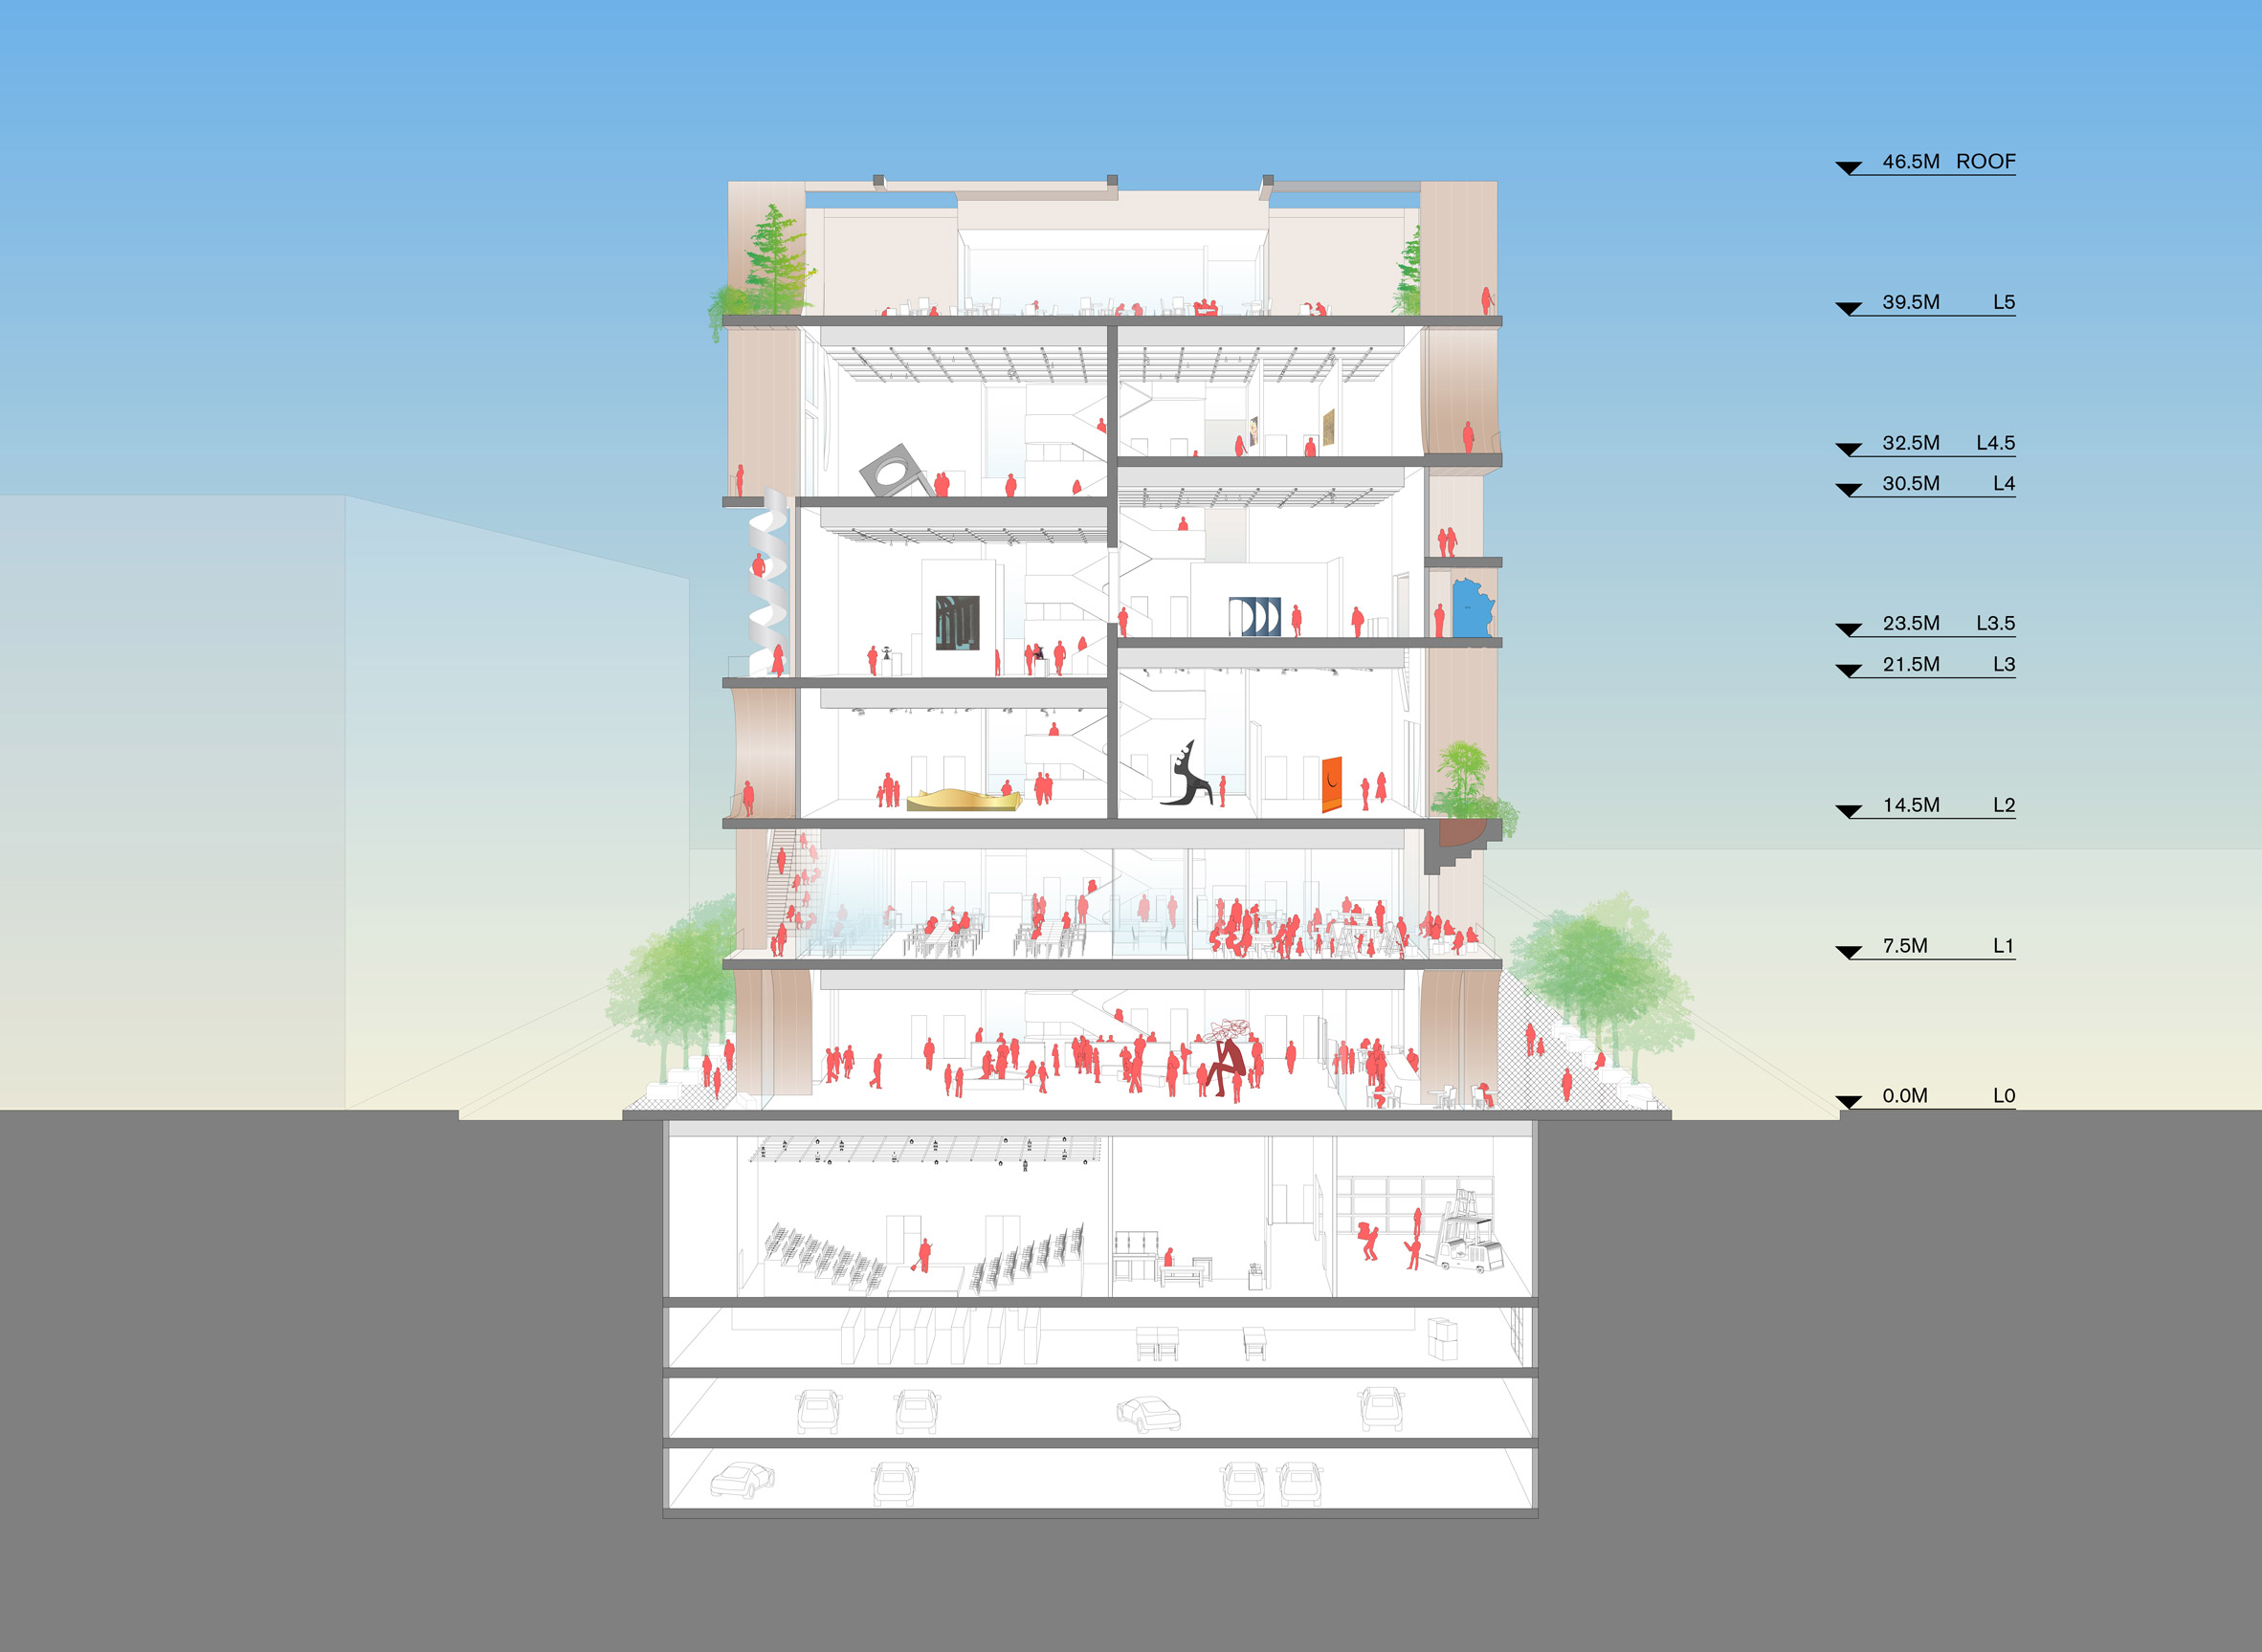 Balconies will double as exhibition space in WORKac's Beirut Museum